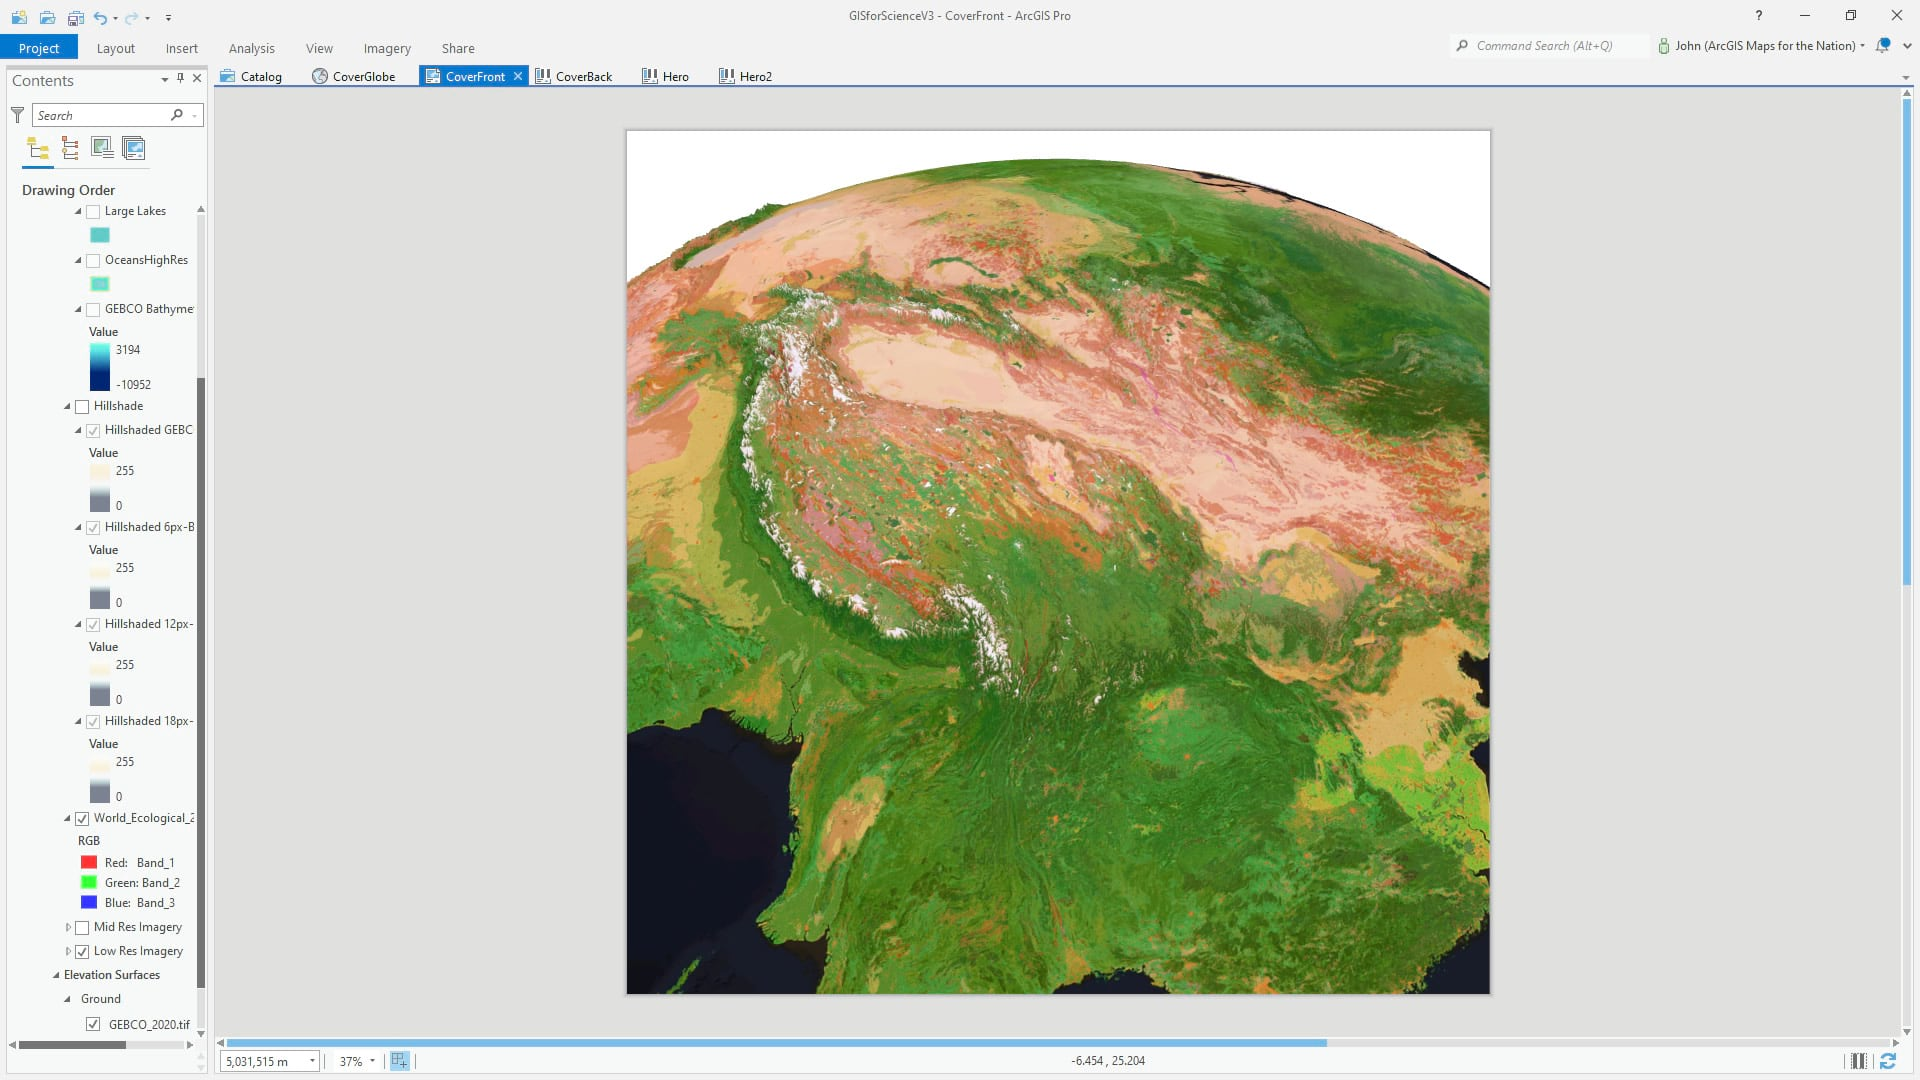 ArcGIS Pro 3D global scene with Ecological Land Units.